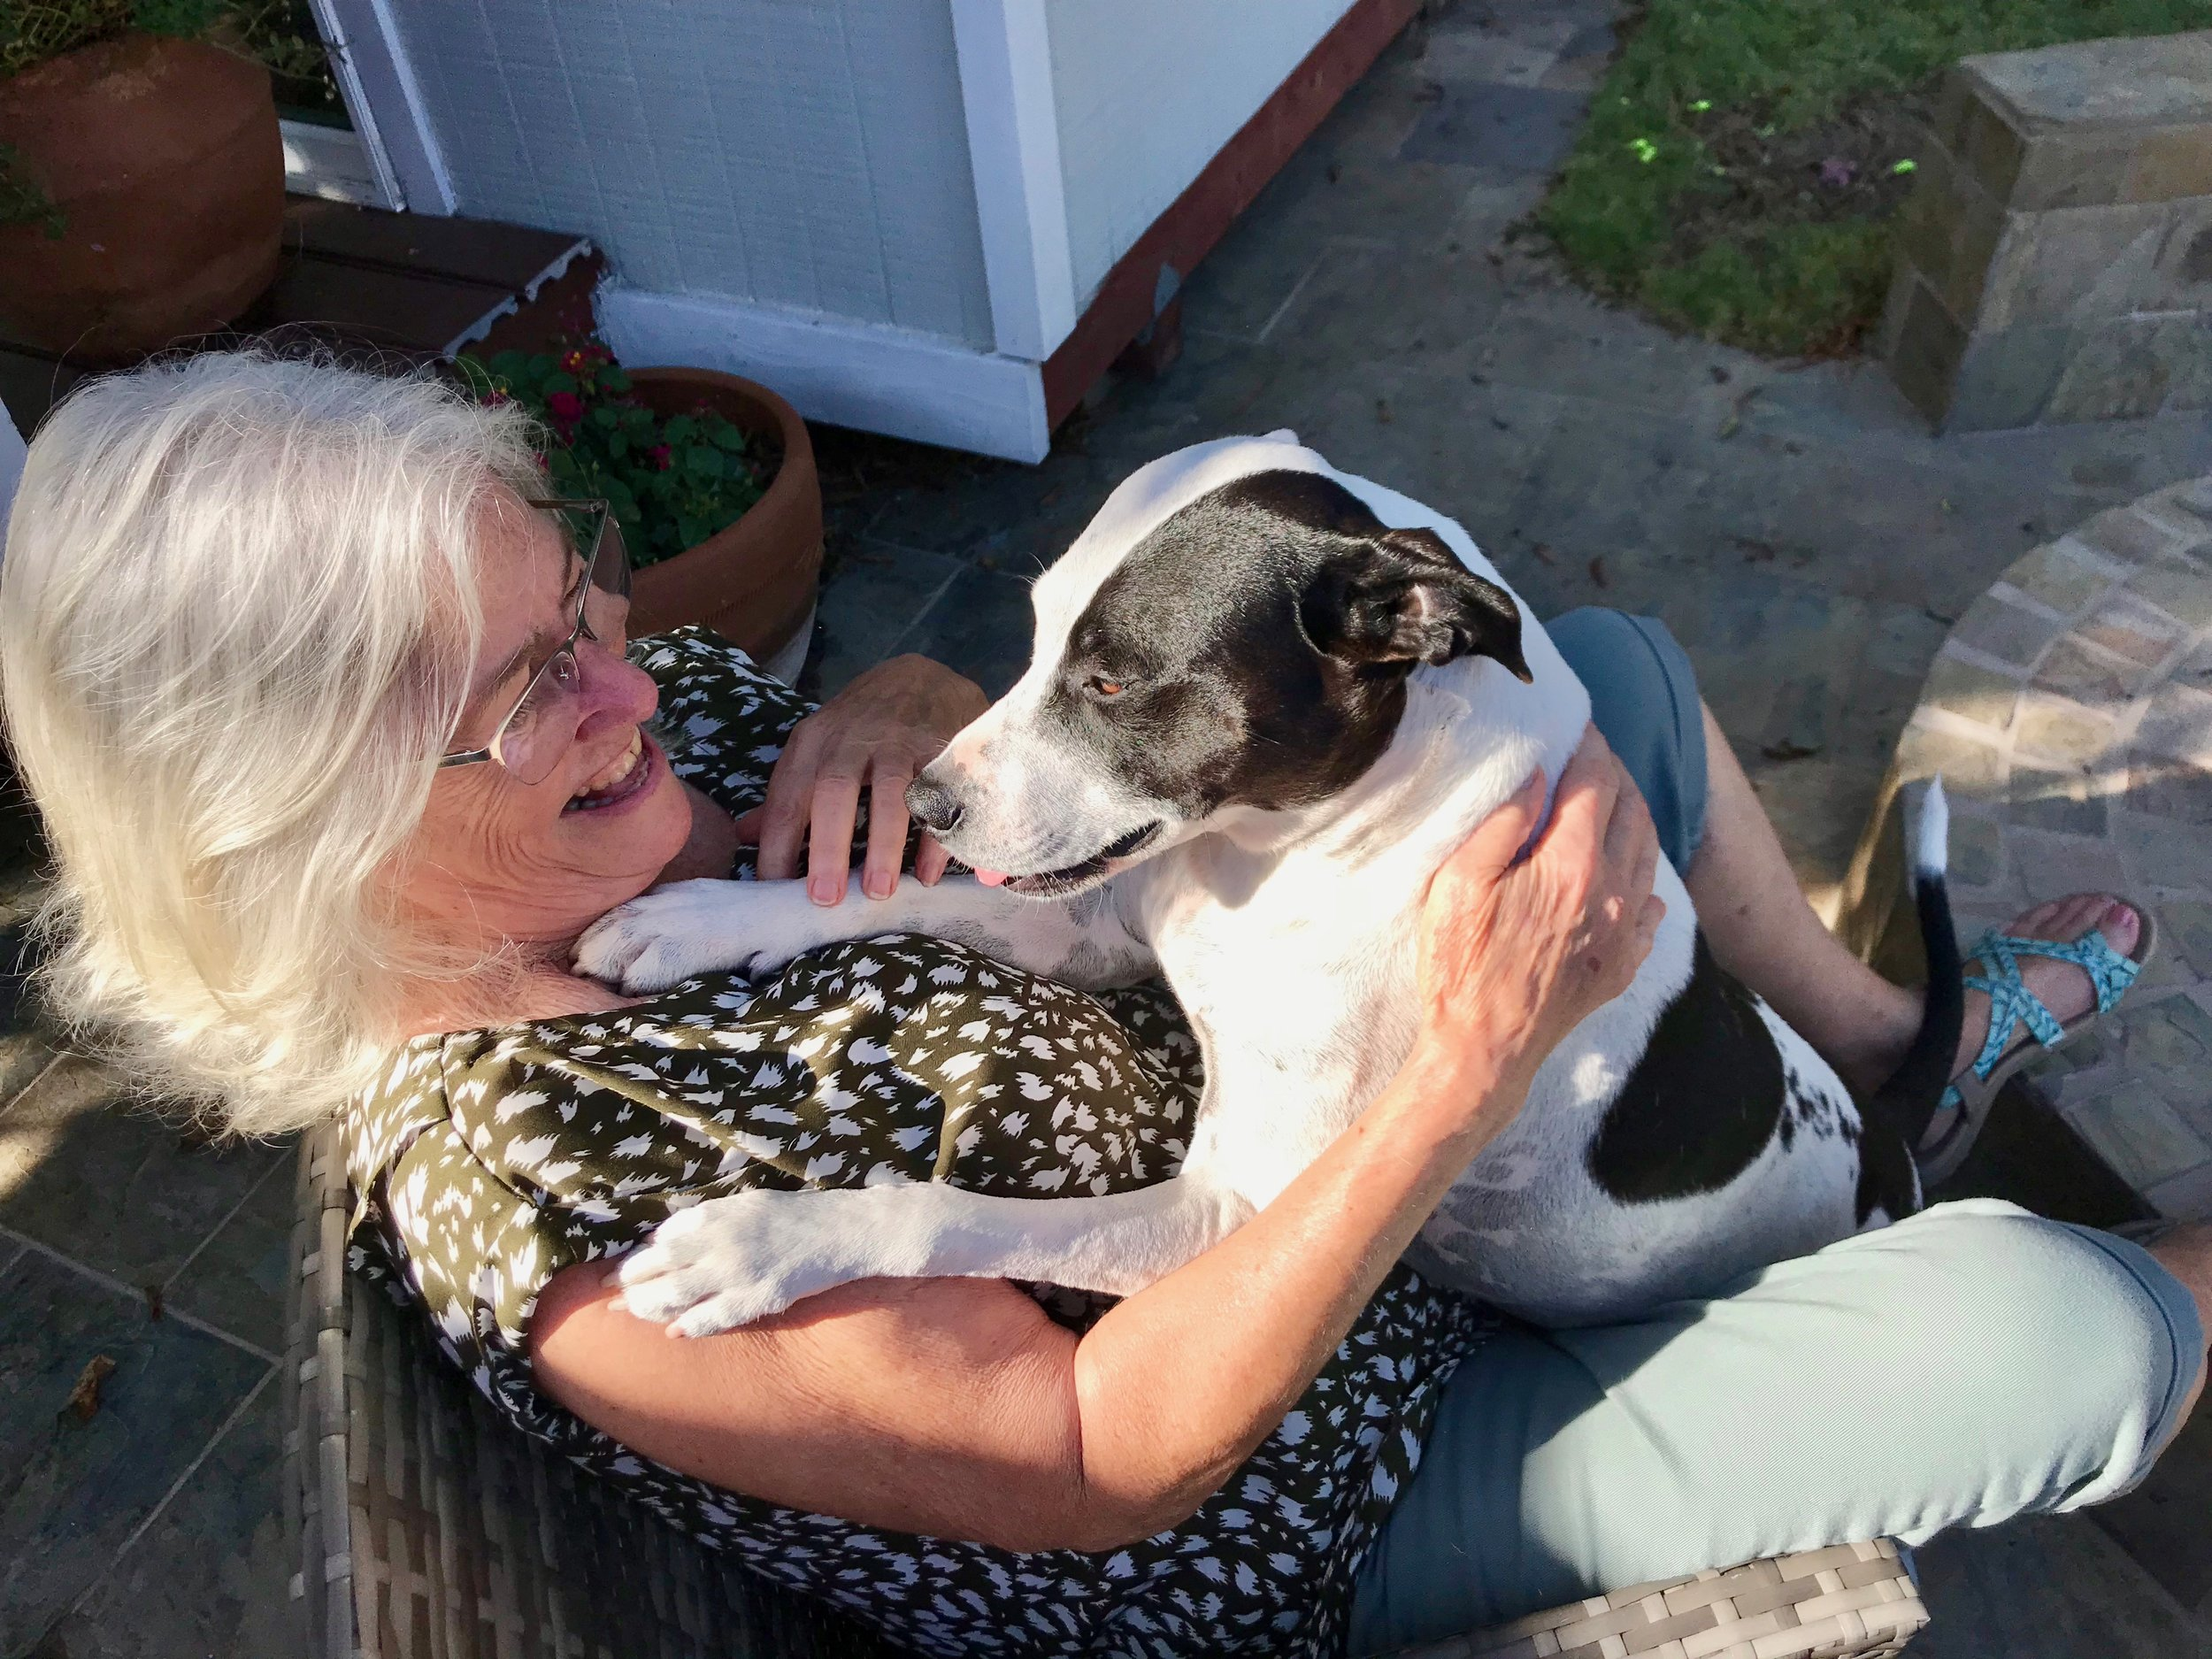 Sweet Delilah is a Staffie mix and has the sweet temperament of the breed